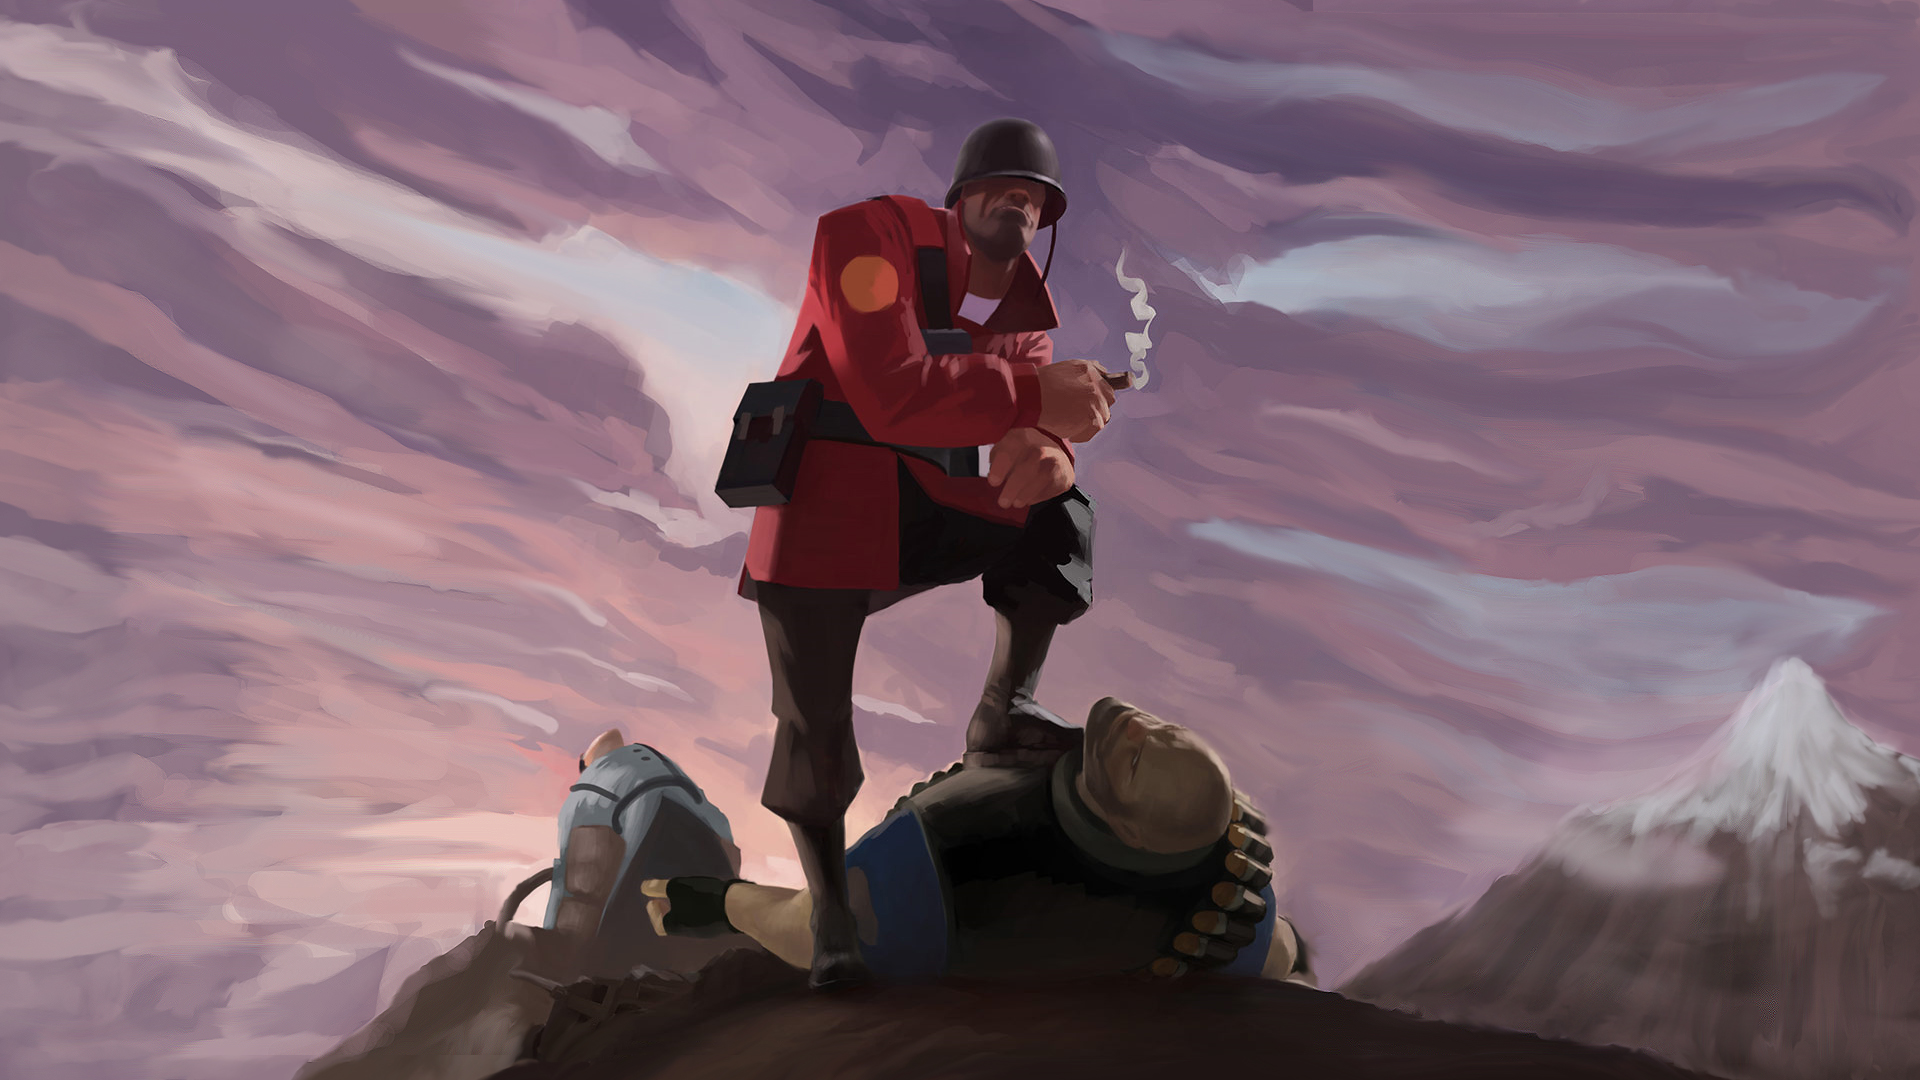 team fortress 2 wallpapers high quality download free